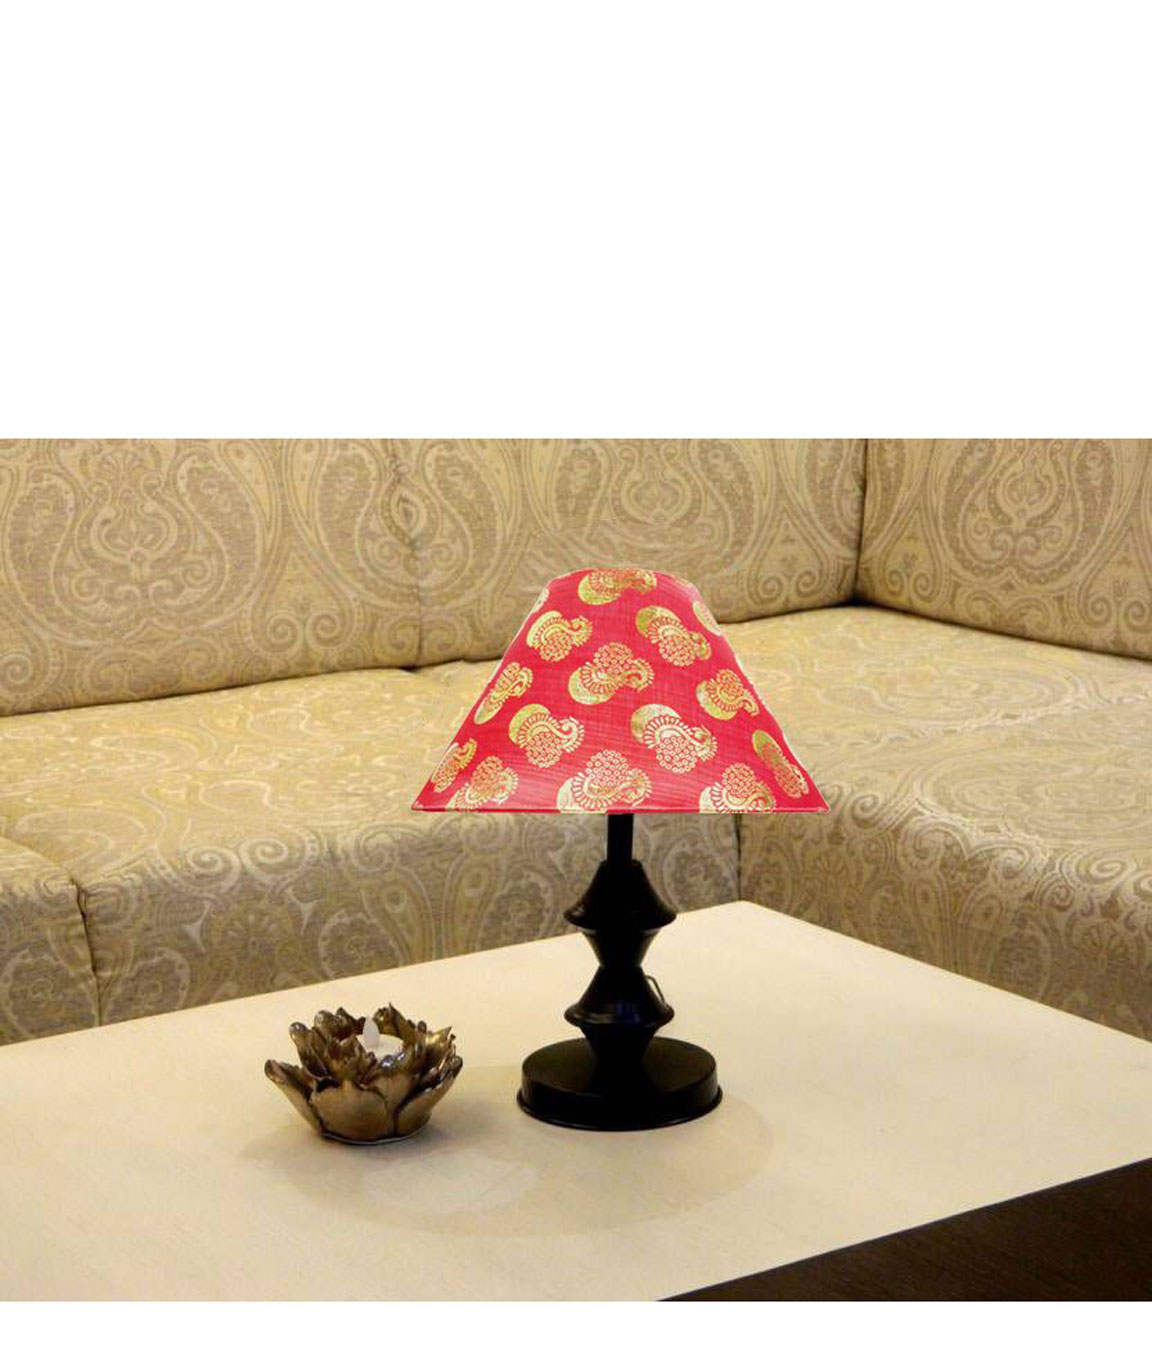 RDC Black Double Ring Stand Table Lamp with 10 Inches Round Red Golden Designer Lamp Shade